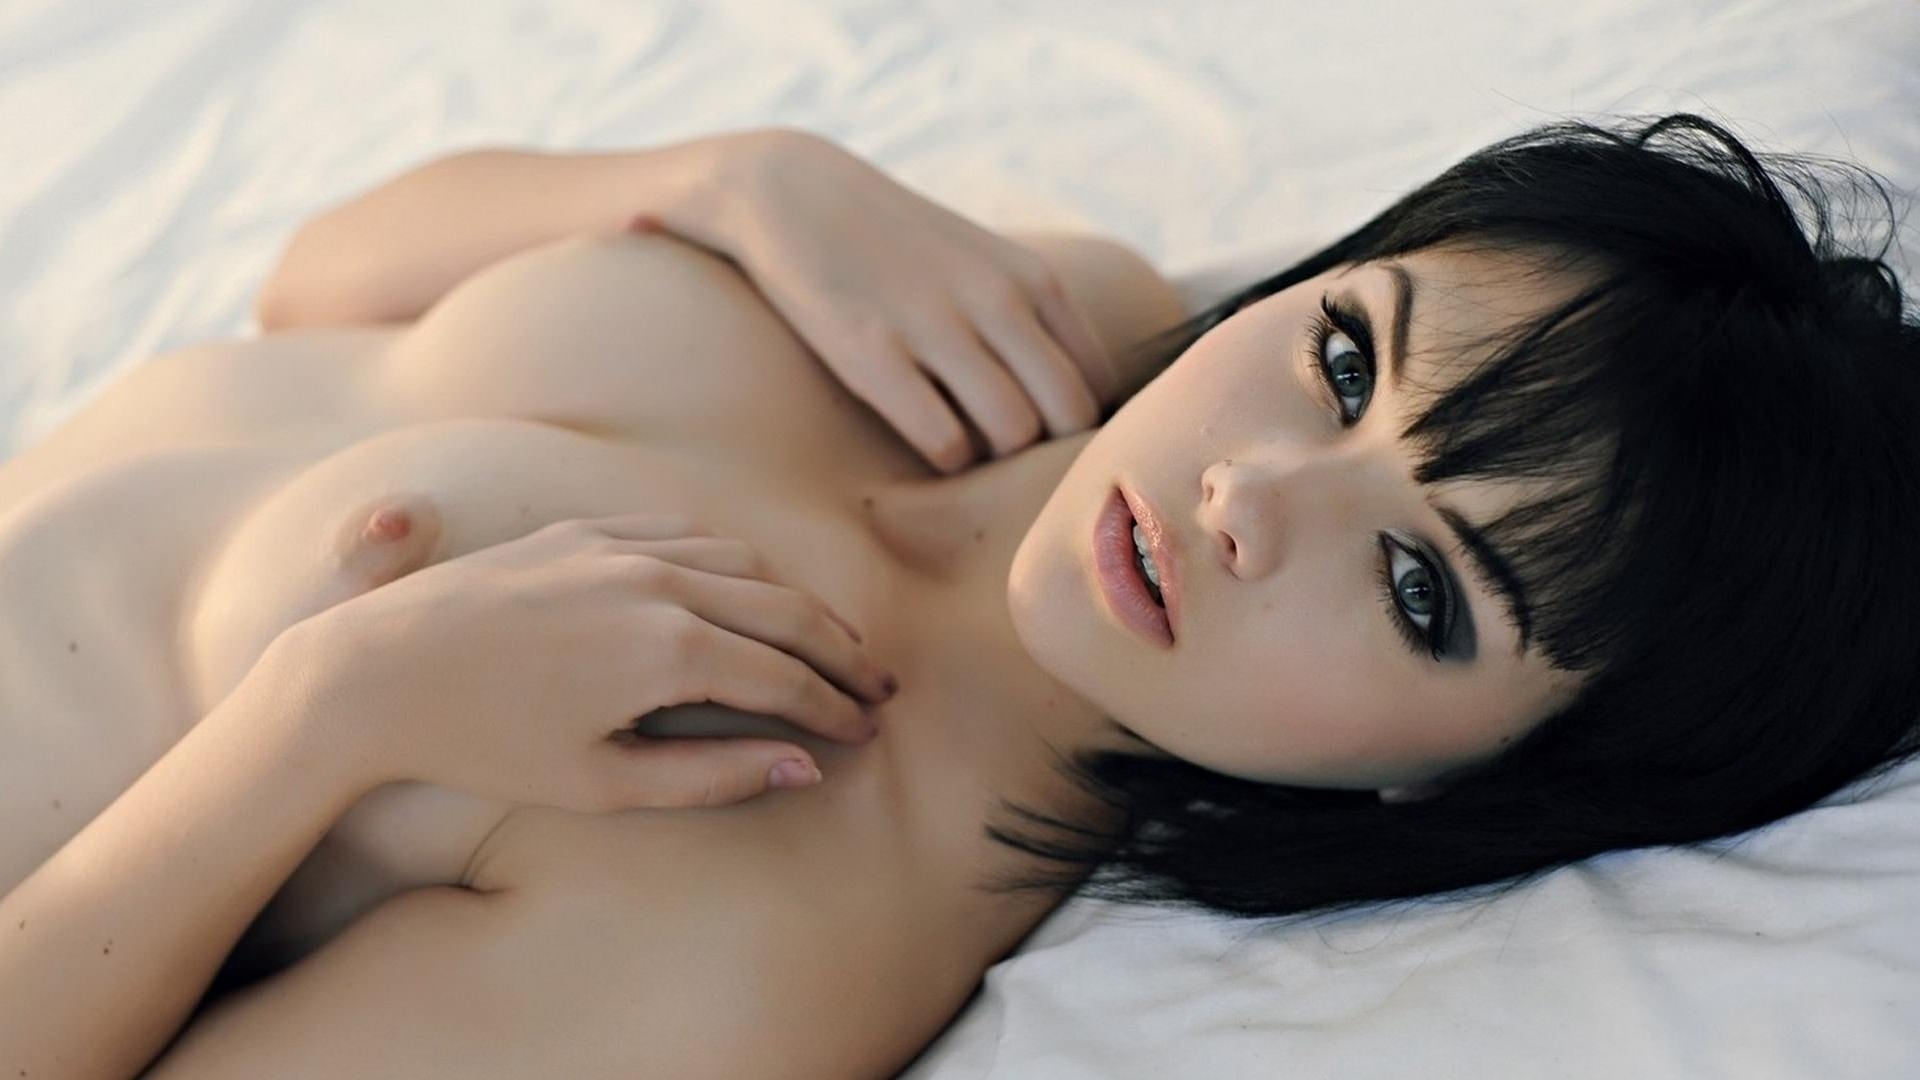 Stunning Pale Skin Brunette Teen Flashes Her Body Nude